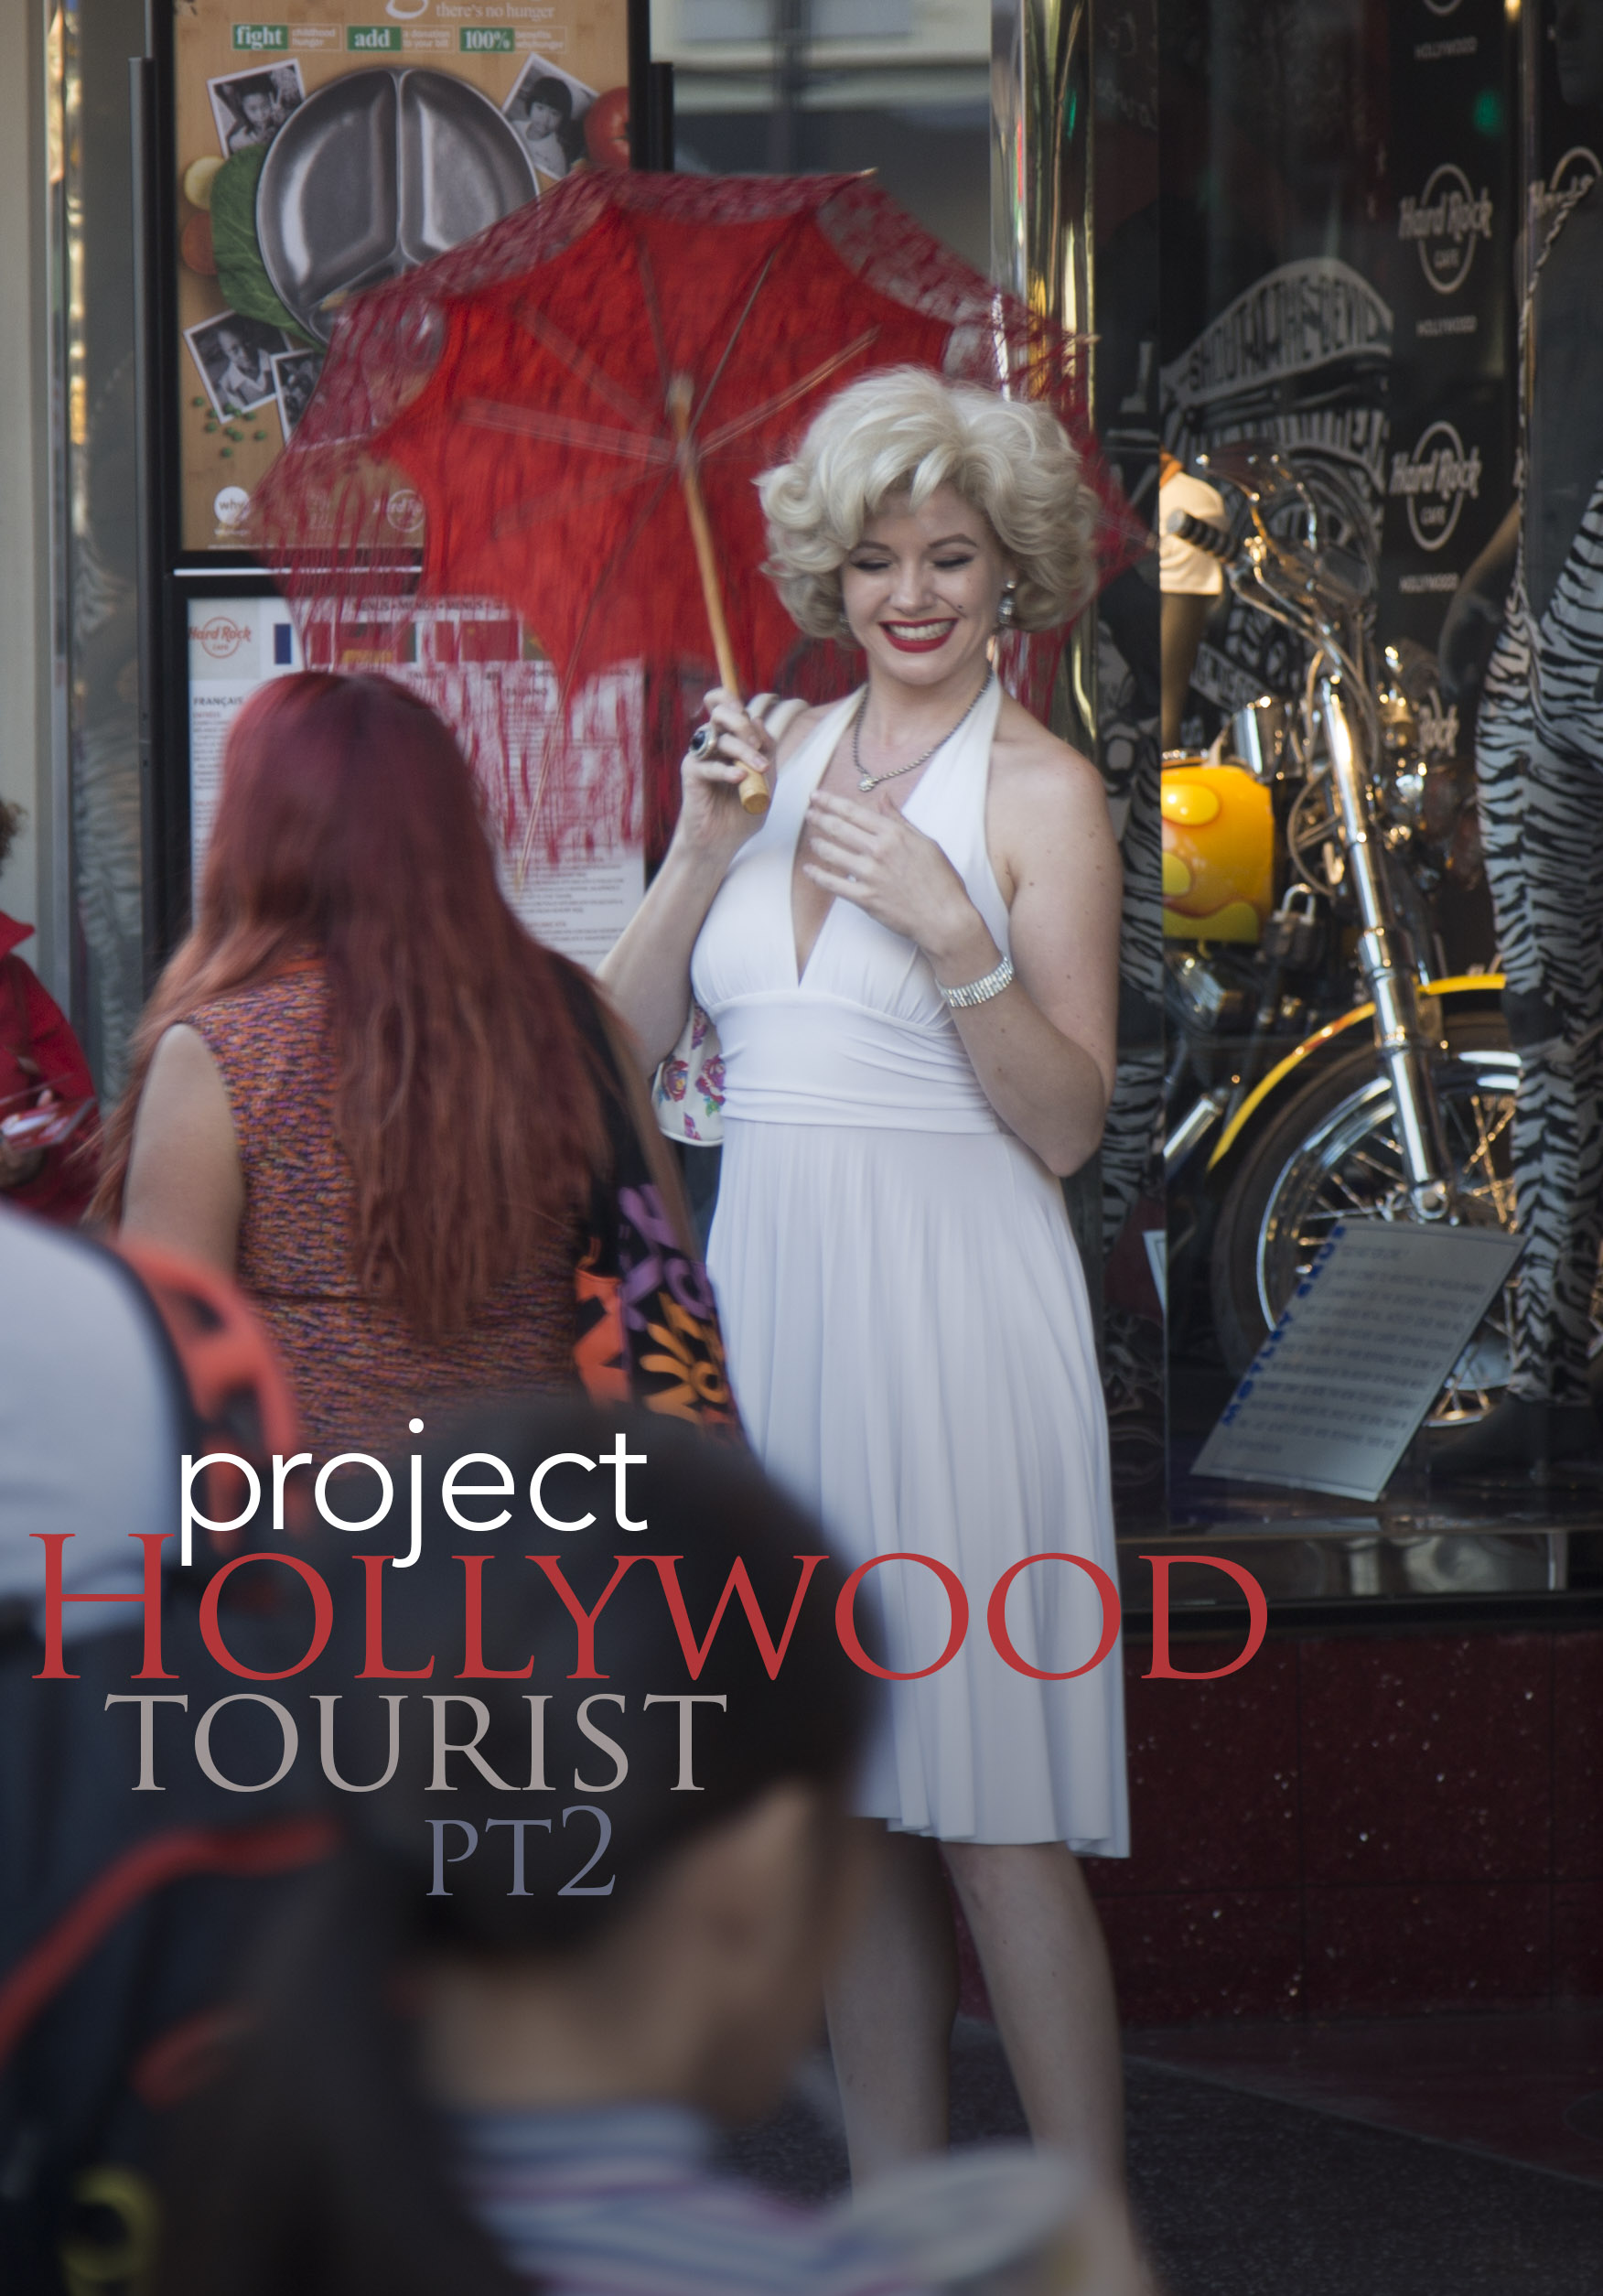 A Marilyn Monroe impersonator poses with tourists on Hollywood Blvd for $$